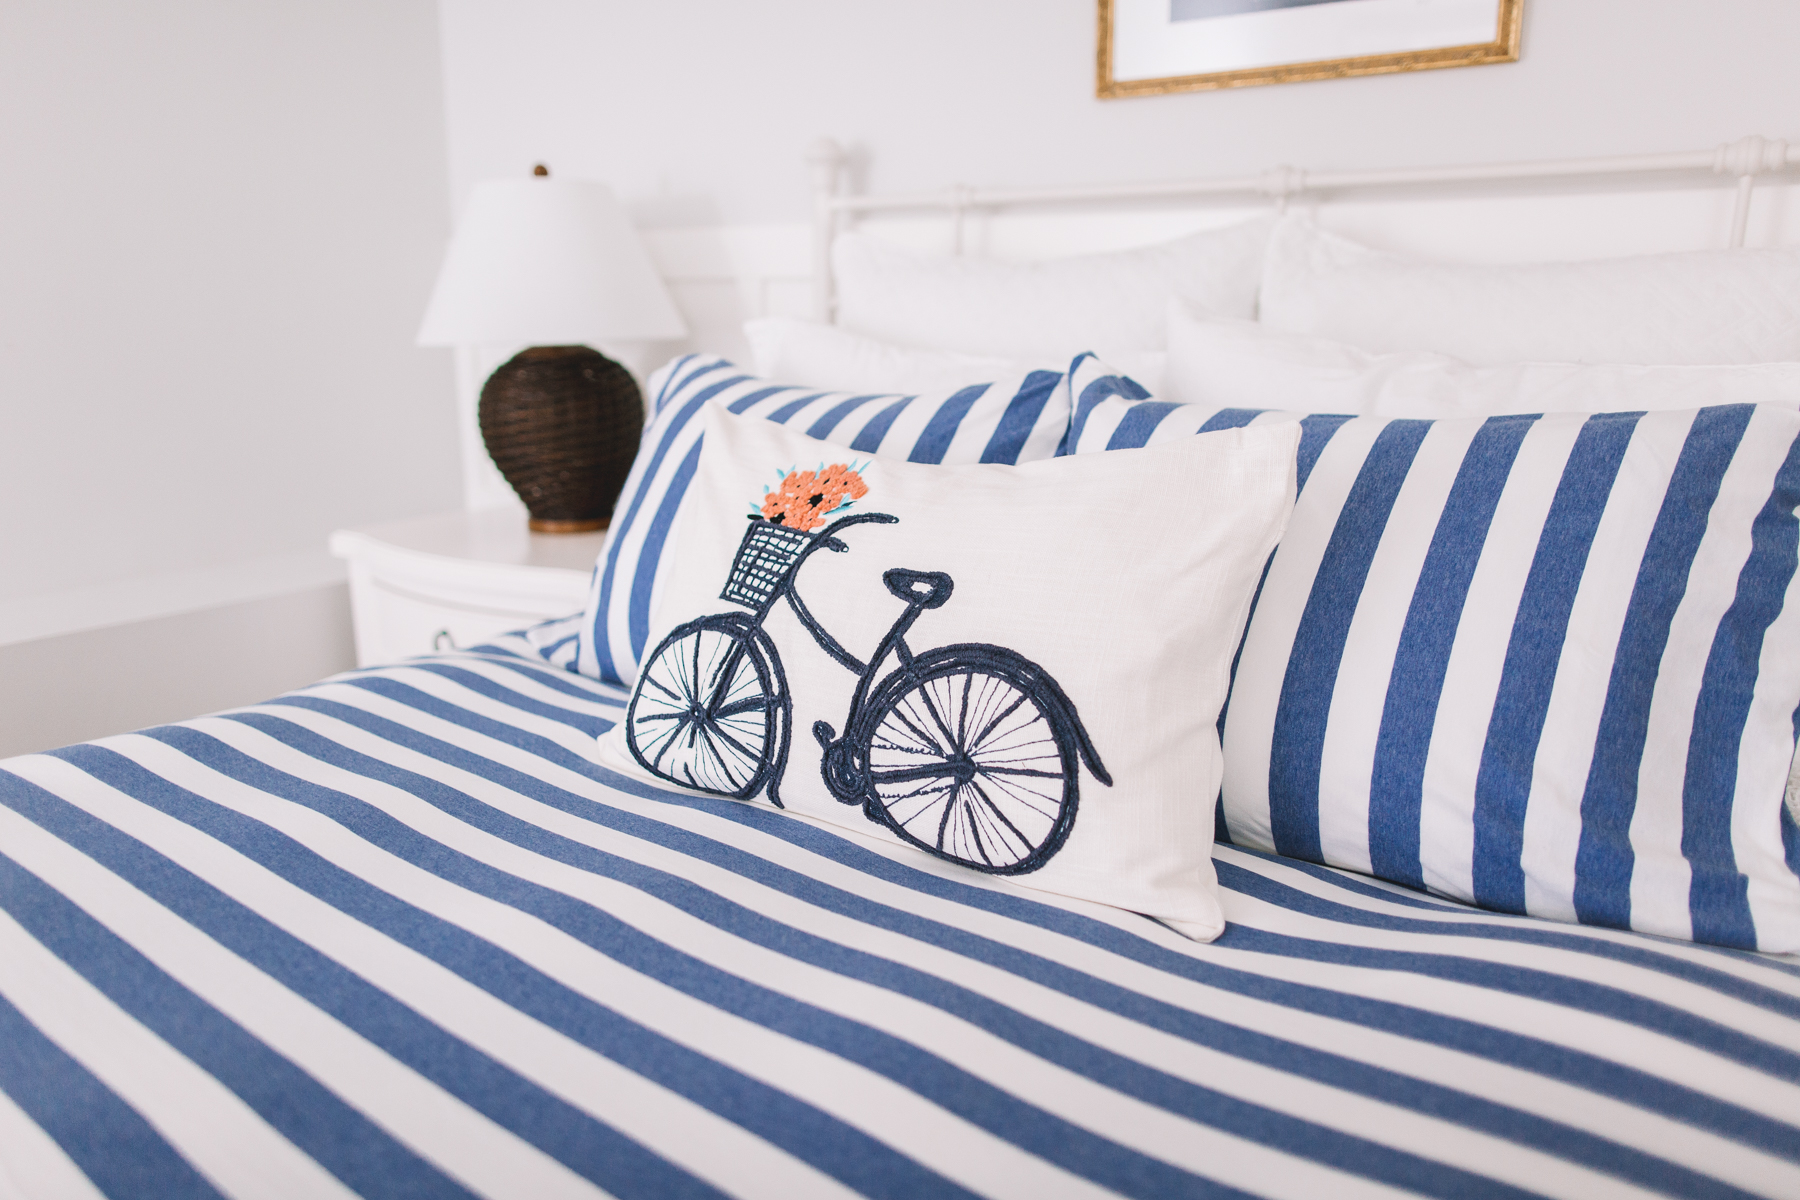 Winners Duvet Covers Preppy Bedding That Won 39t Break The Bank Kelly In The City